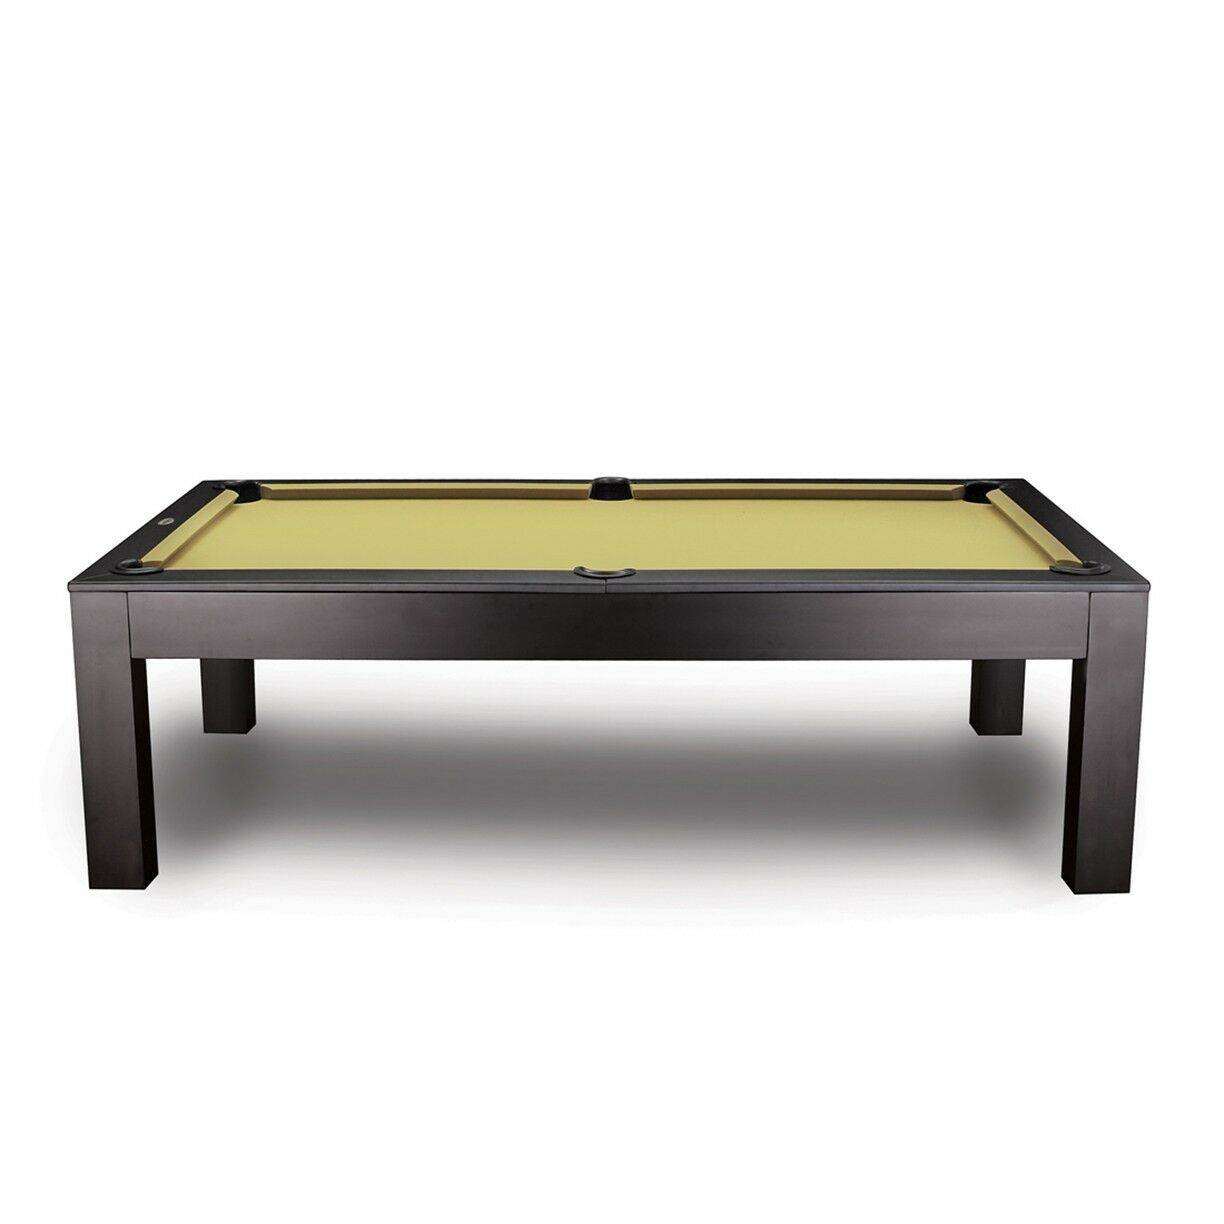 7' Penelope Slate Pool Table including Matching Dining Top in Walnut Finish